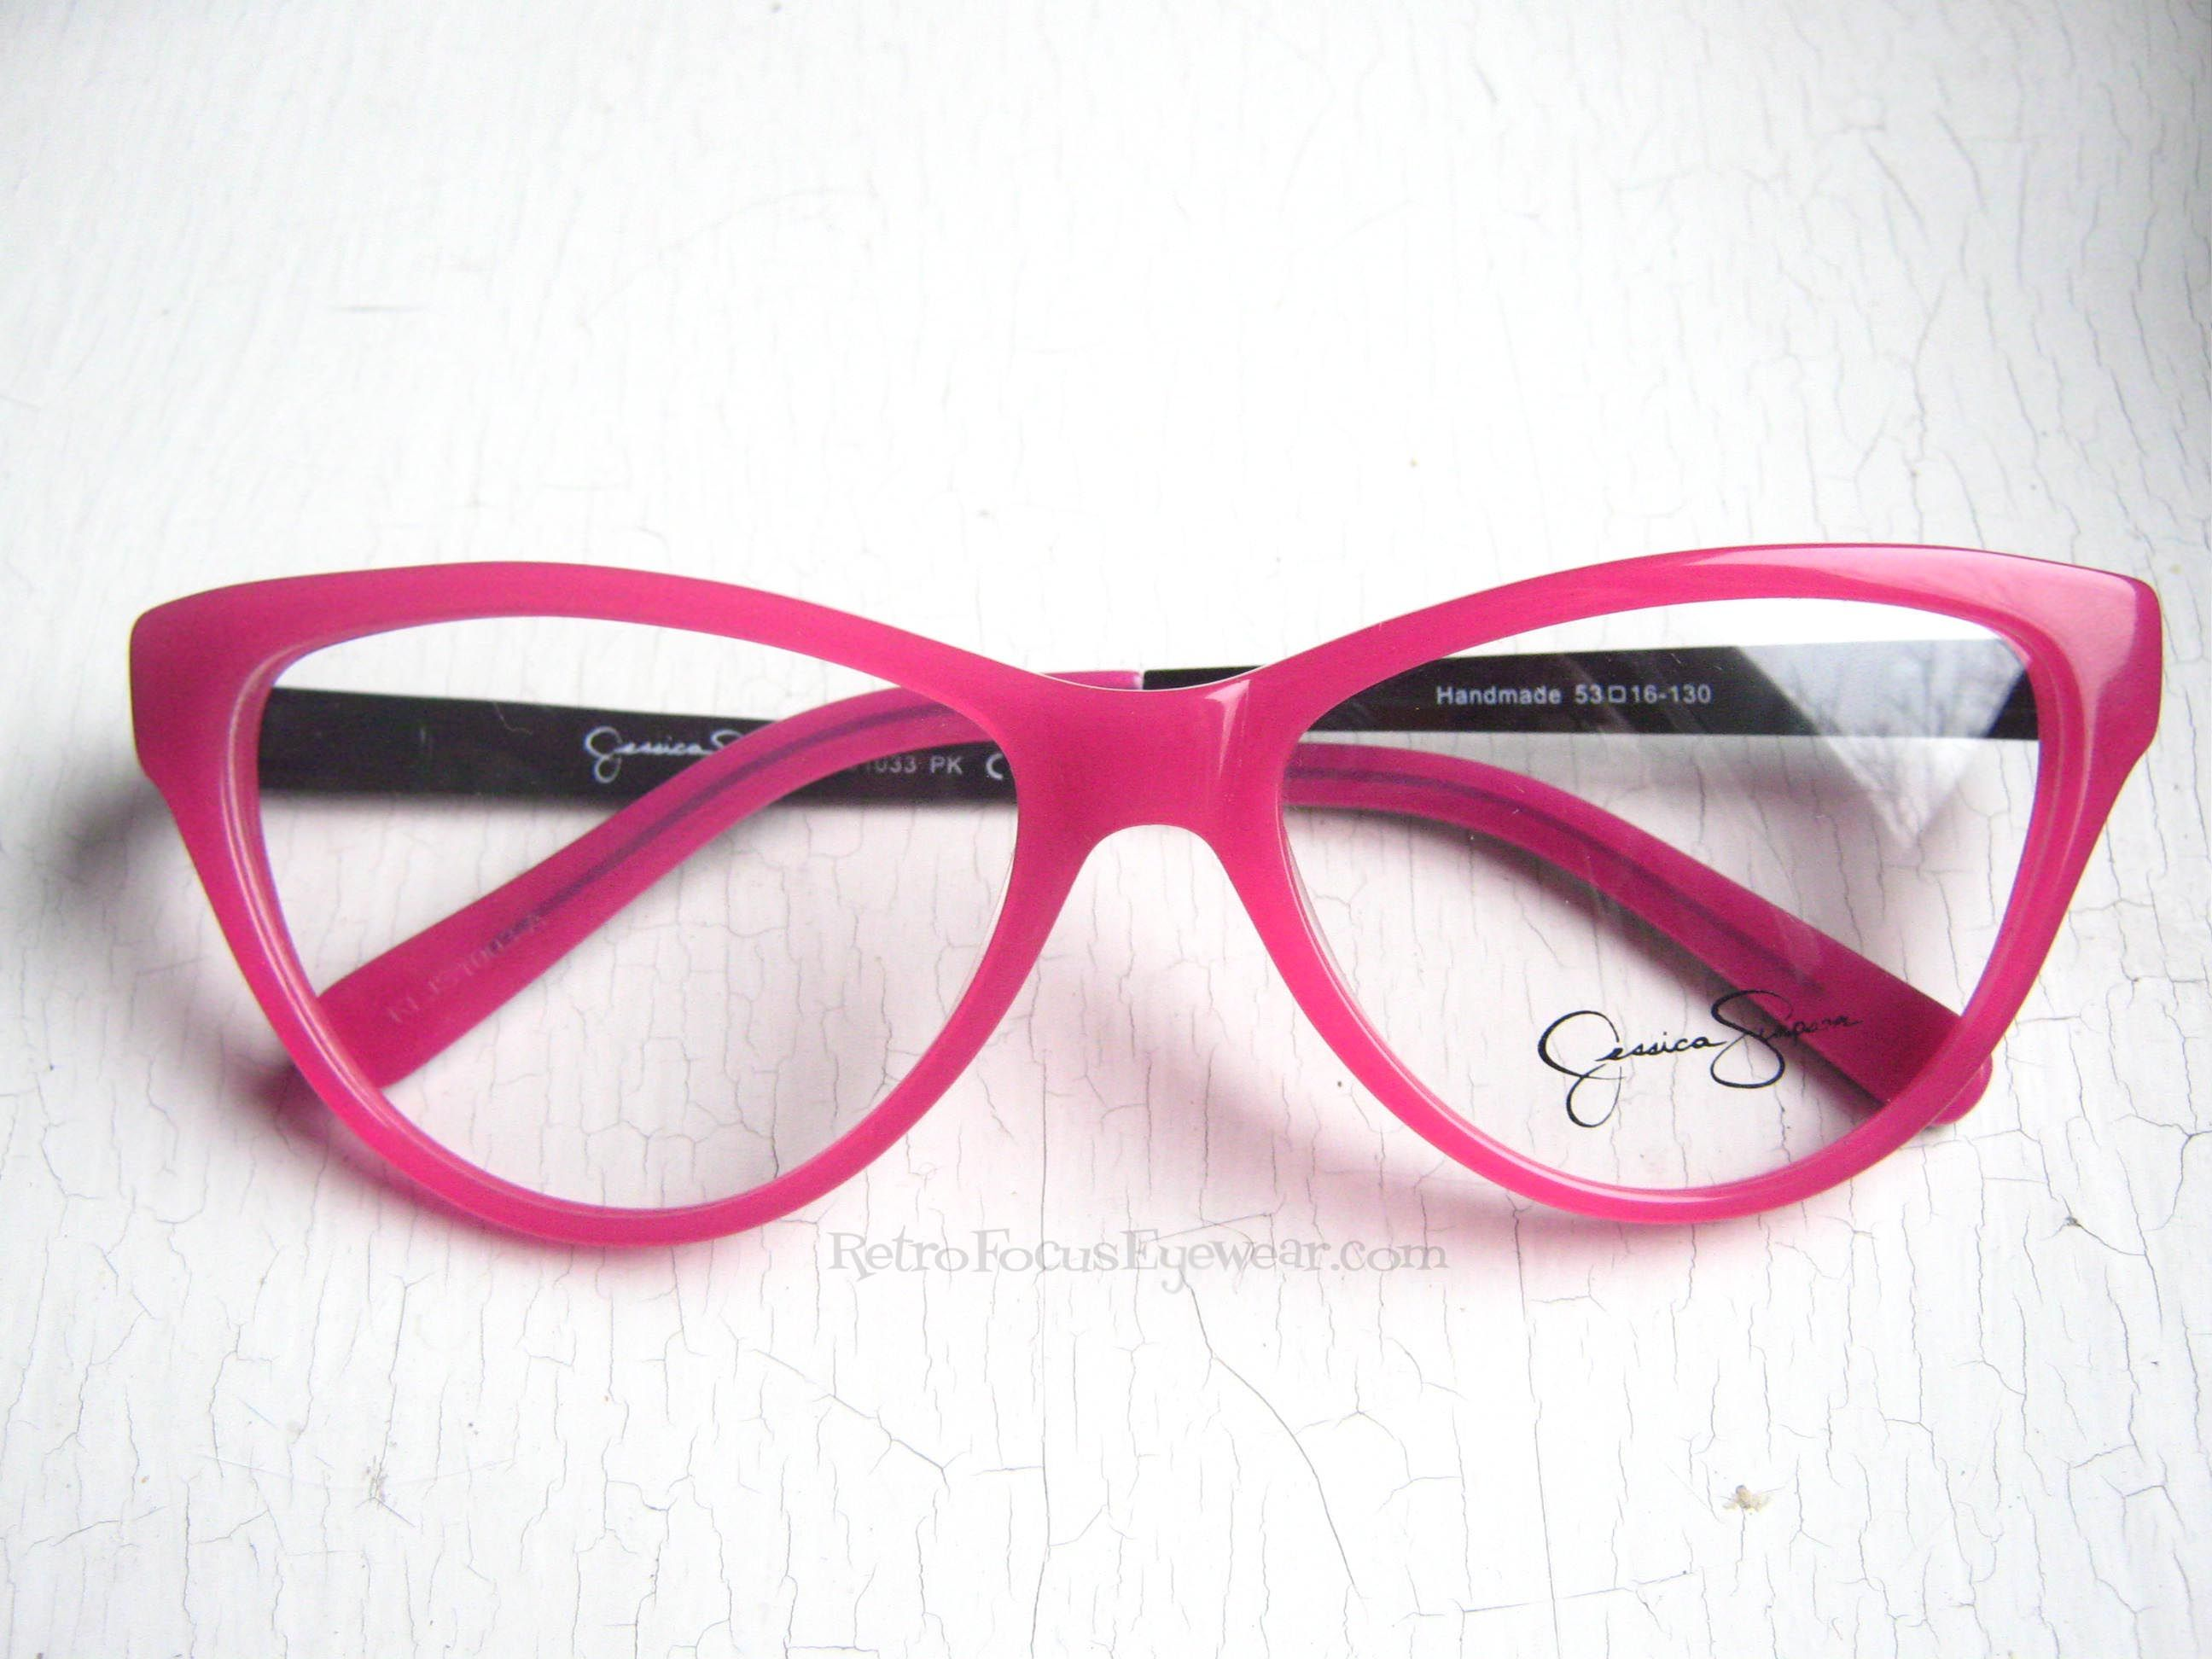 funky eyeglass frames 9fev  Jessica Simpson Pink Oversized Eyeglass Frames Gorgeous cat eye eyeglass  frames with black/pink